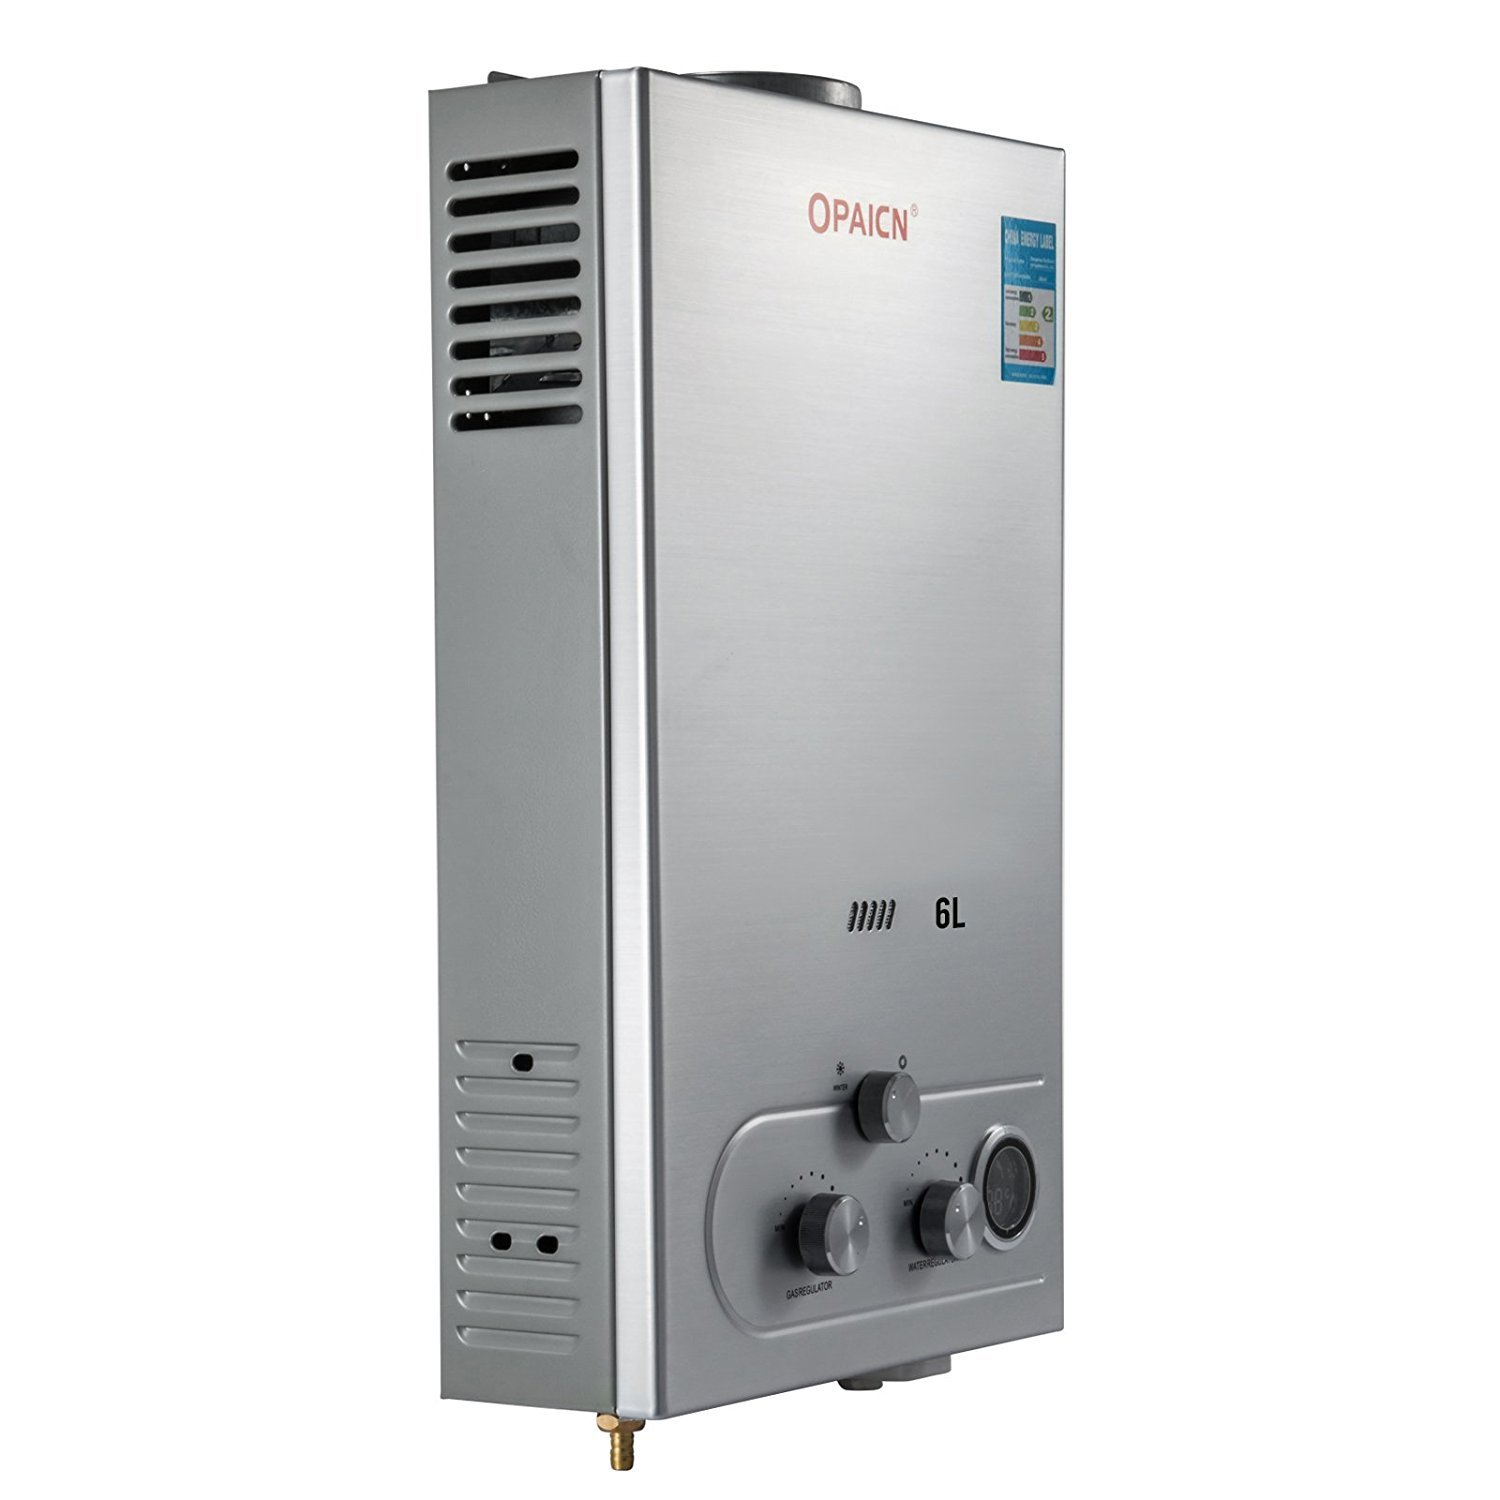 BuoQua 6L Propane Gas Hot Water Heater Digital Display High Efficient with Shower Head Wall-Mounted Water Heater 6L-LPG